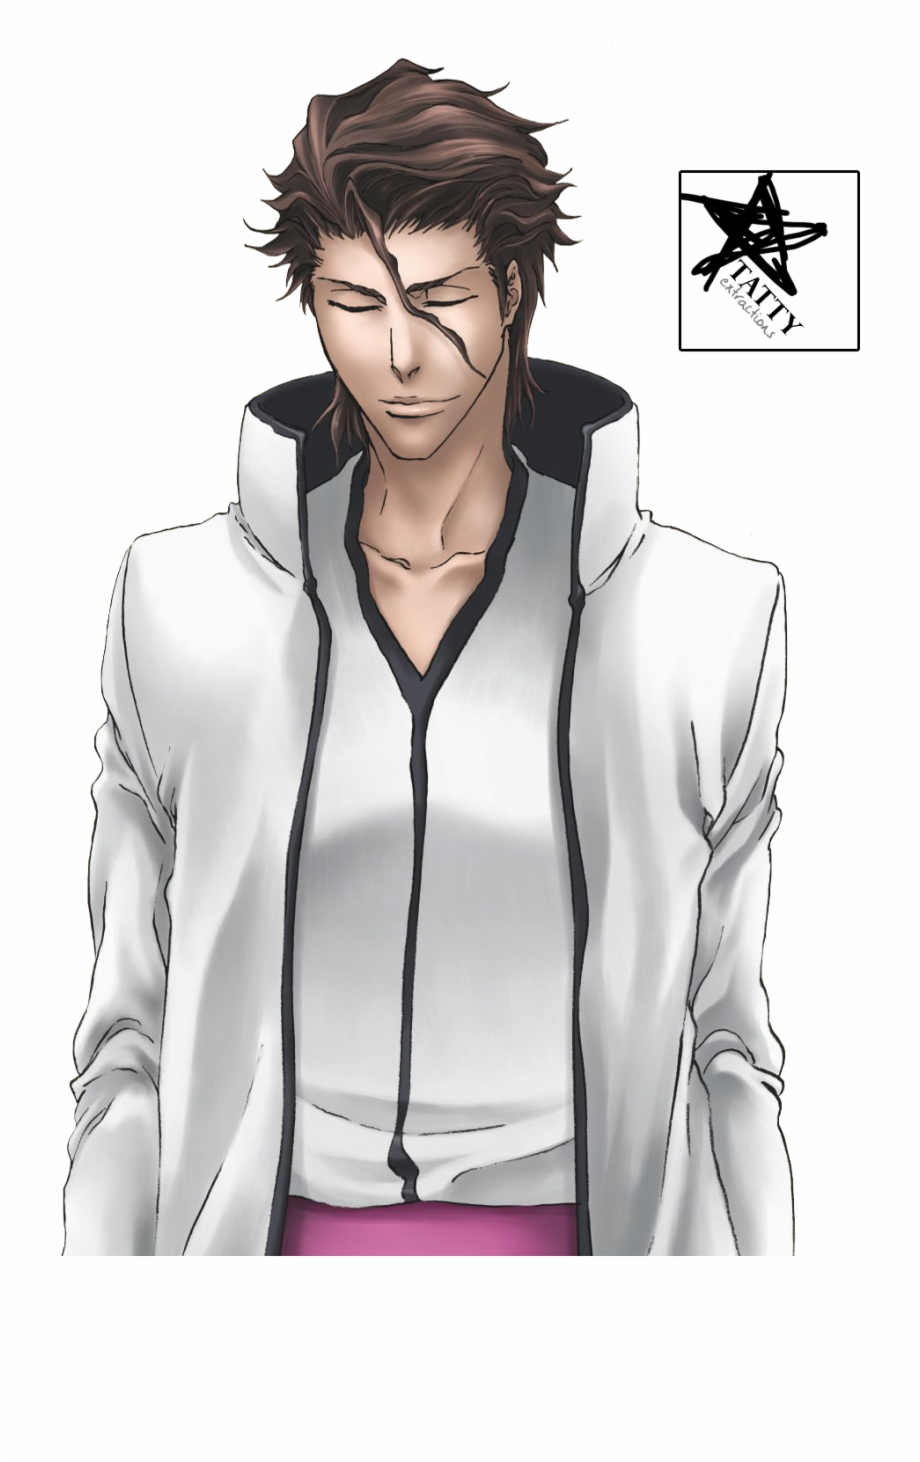 Aizen Images aizen Hd Wallpaper And Background   Aizen 920x1462